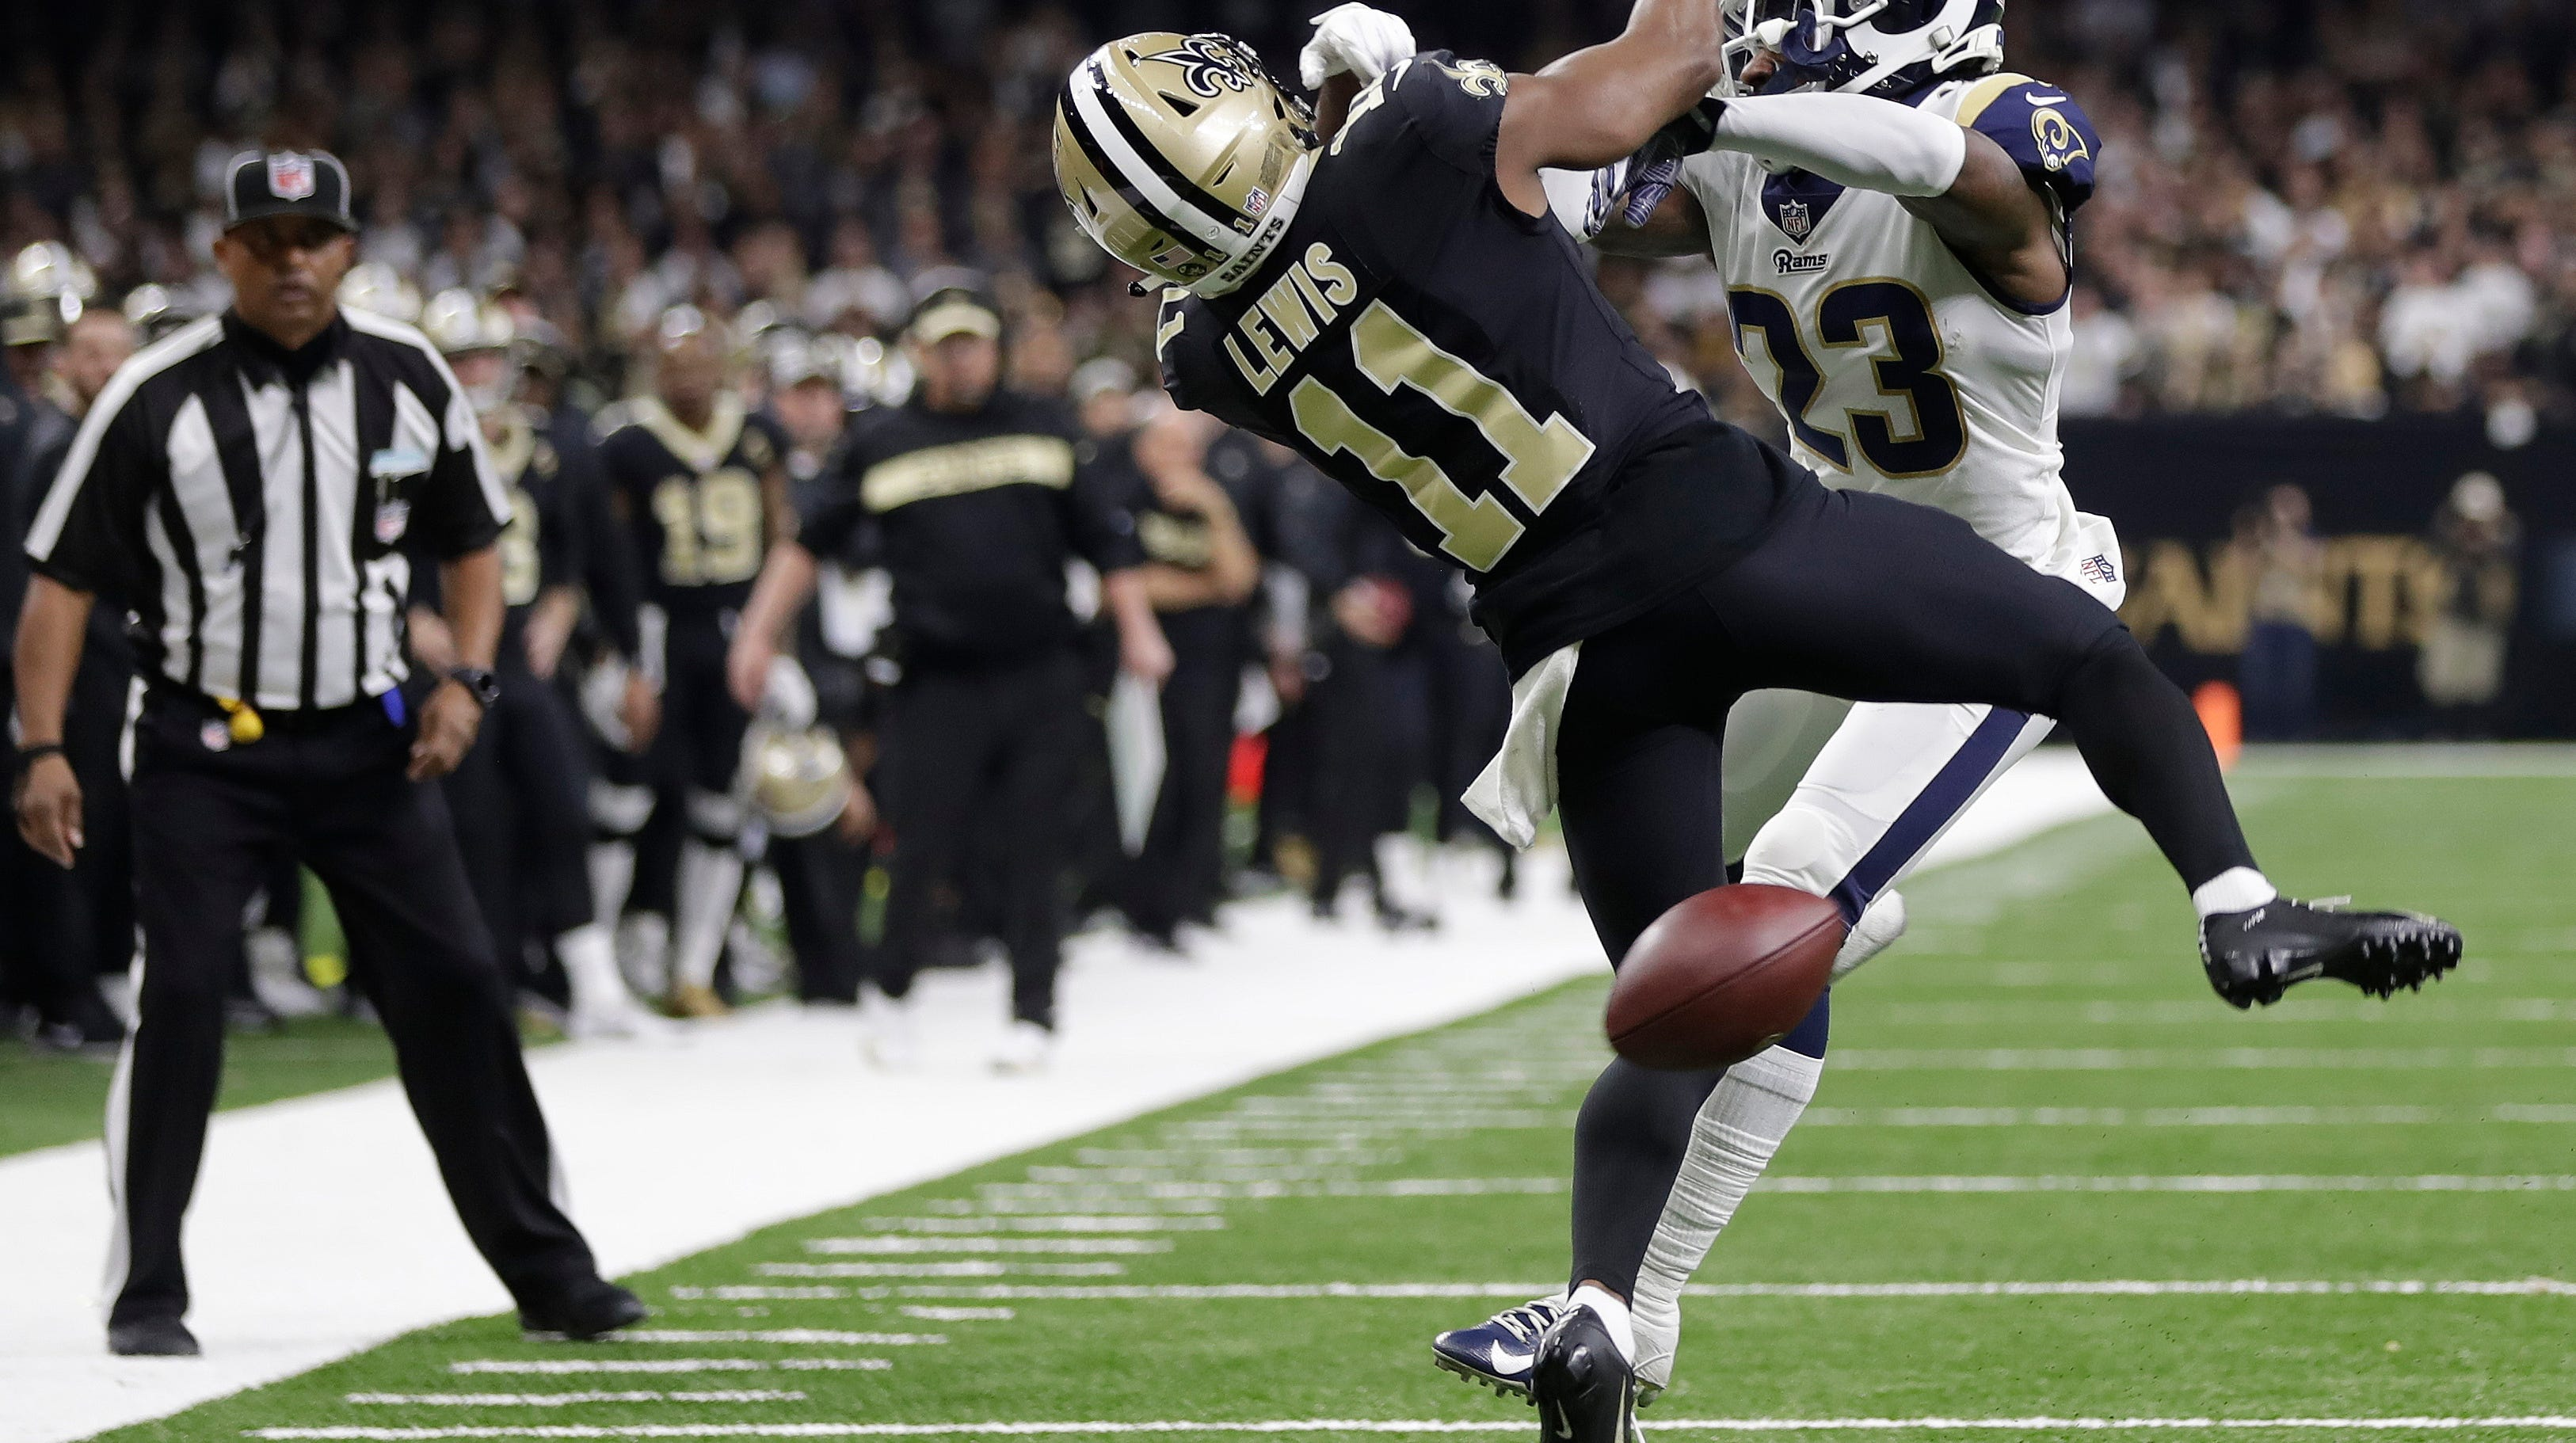 Roth: After crazy Championship Sunday, it's time for NFL to tweak replay and overtime